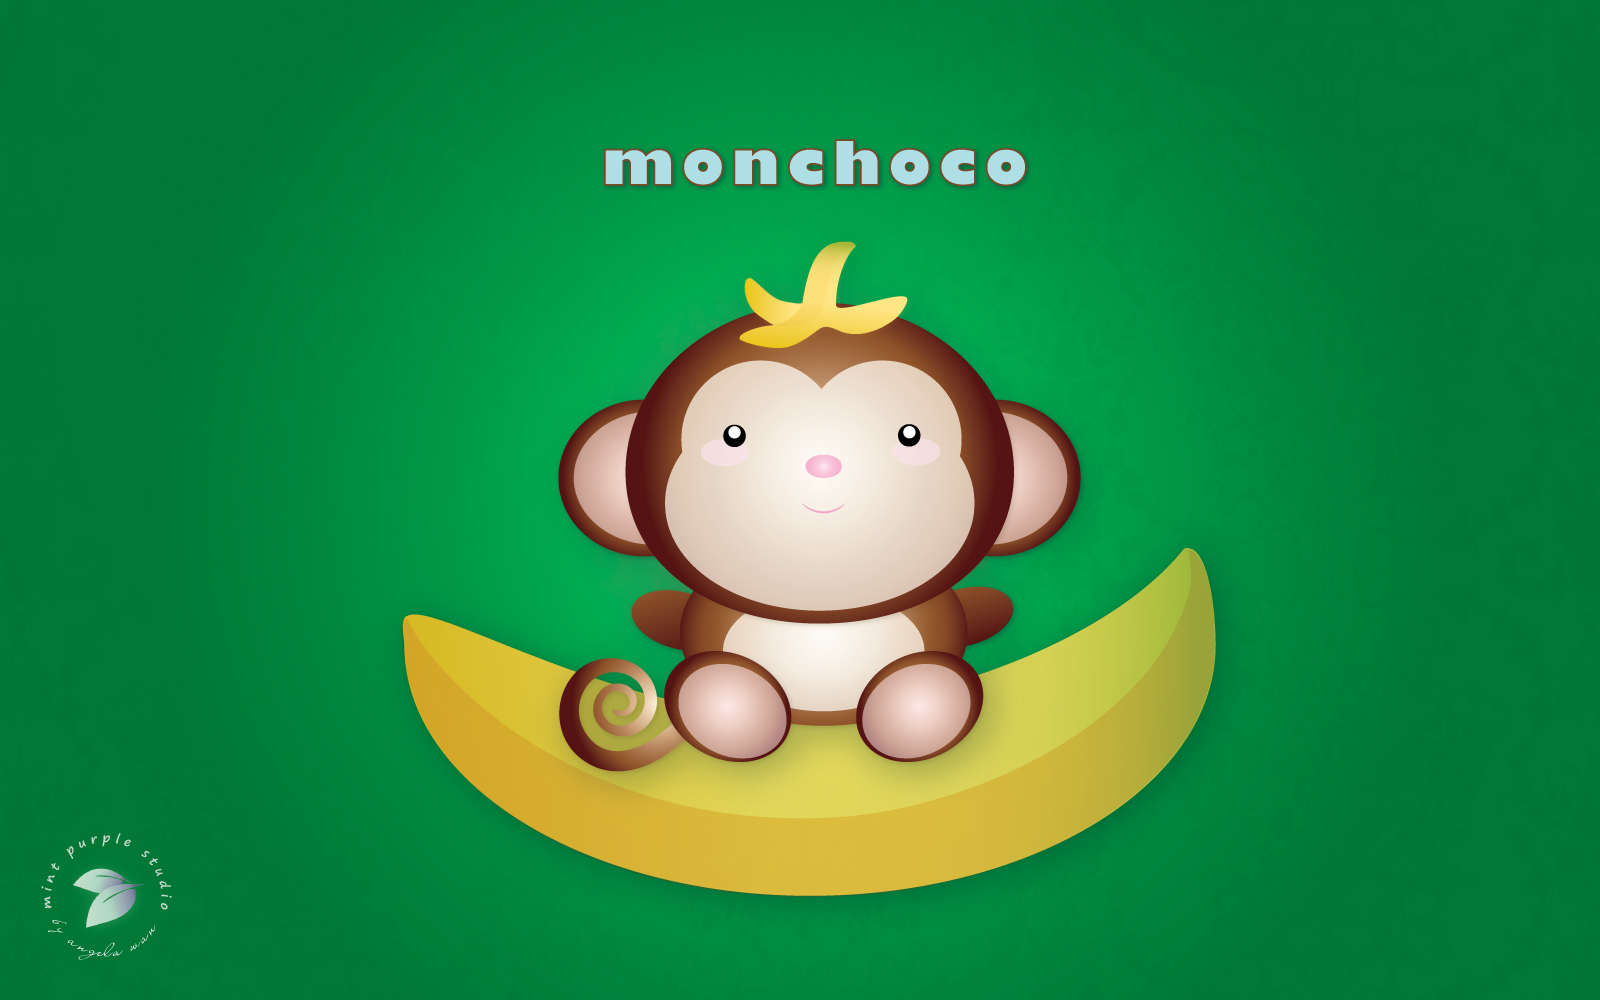 Monkeys And Bananas Cute Wallpaper For Girls Character Series Monchogo And Monchoco The Monkey Twins